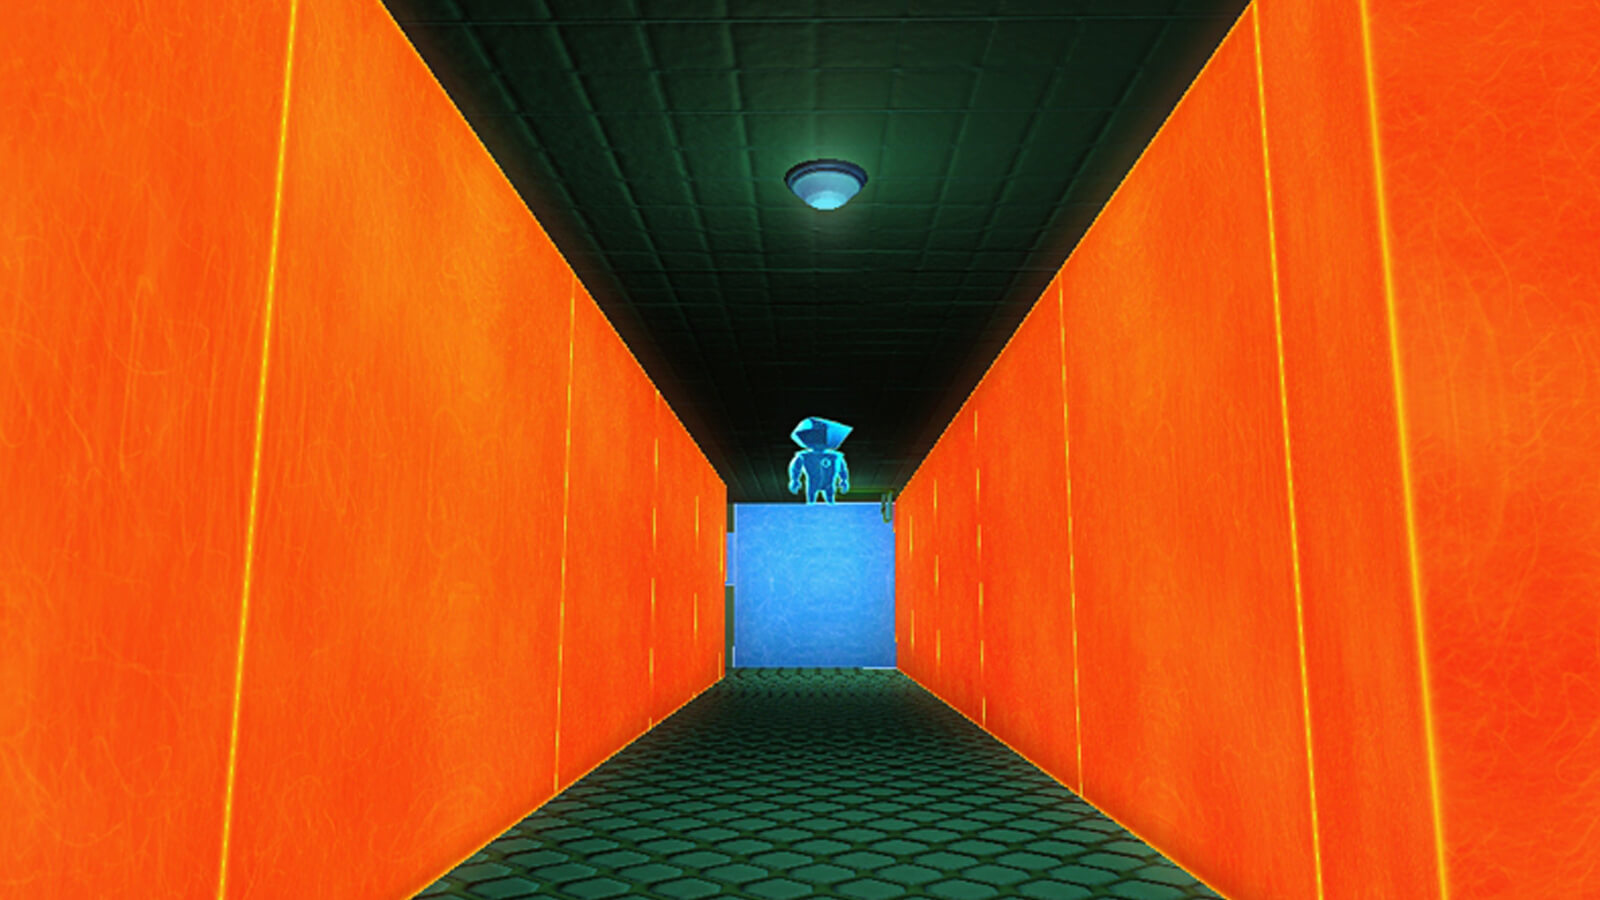 The player's blue avatar stands atop a blue block surrounded by orange walls